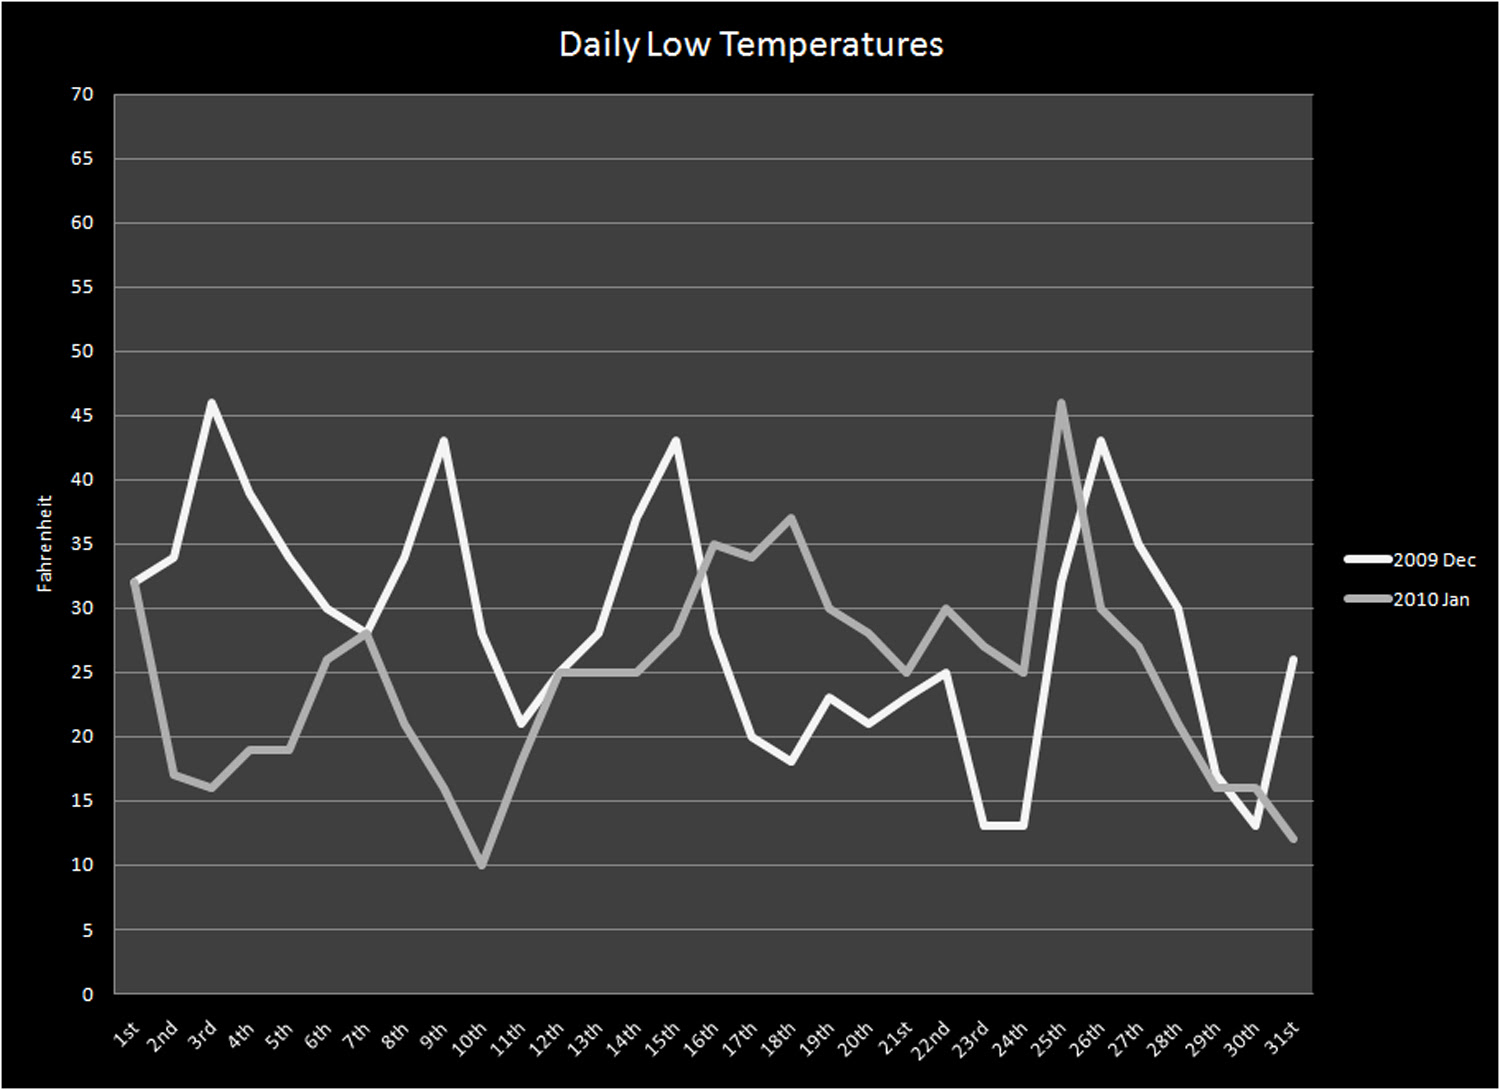 Low Temperatures - Dec 2009 vs. Jan 2010